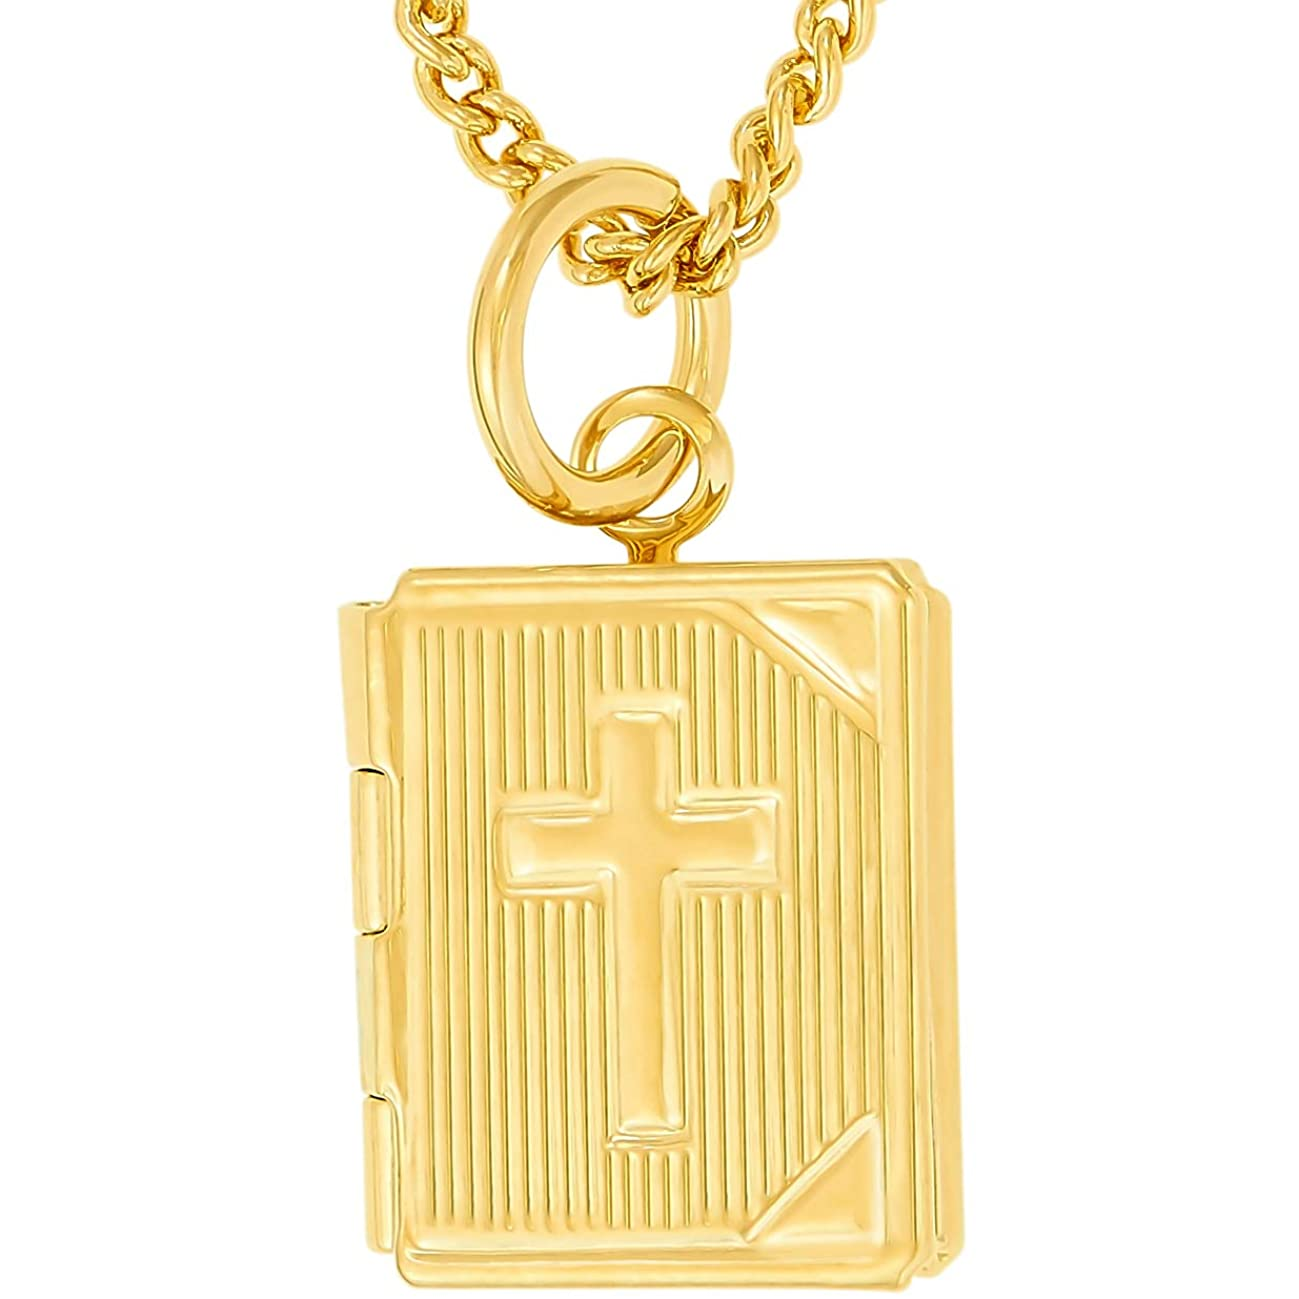 Lifetime Jewelry Bible Locket Necklace That Holds Pictures with up to 20X More 24k Plating Than Other Photo Lockets - Religious Charm Necklace for Women & Men with Free Lifetime Replacement Guarantee